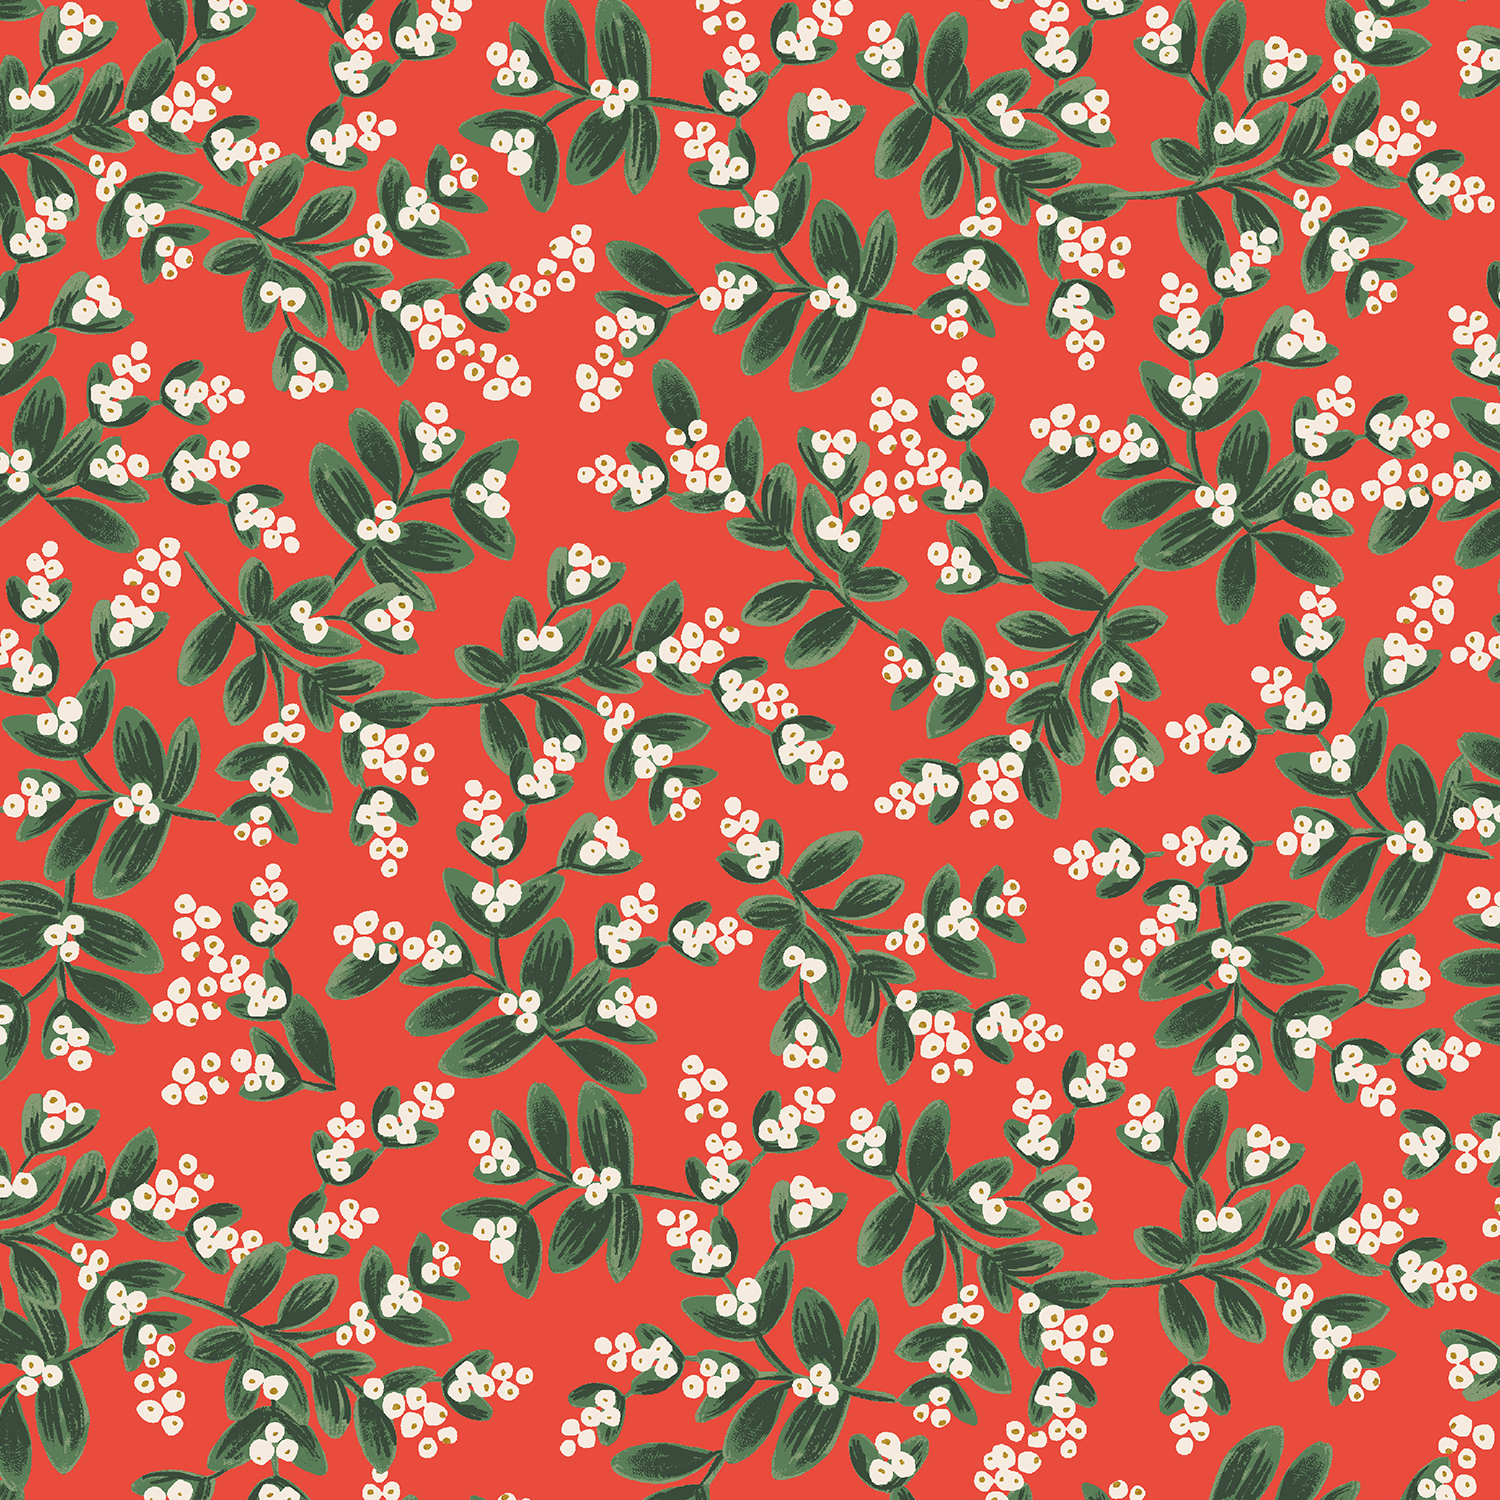 Holiday Classics - Red Mistletoe - By Rifle Paper Co. For Cotton And Steel